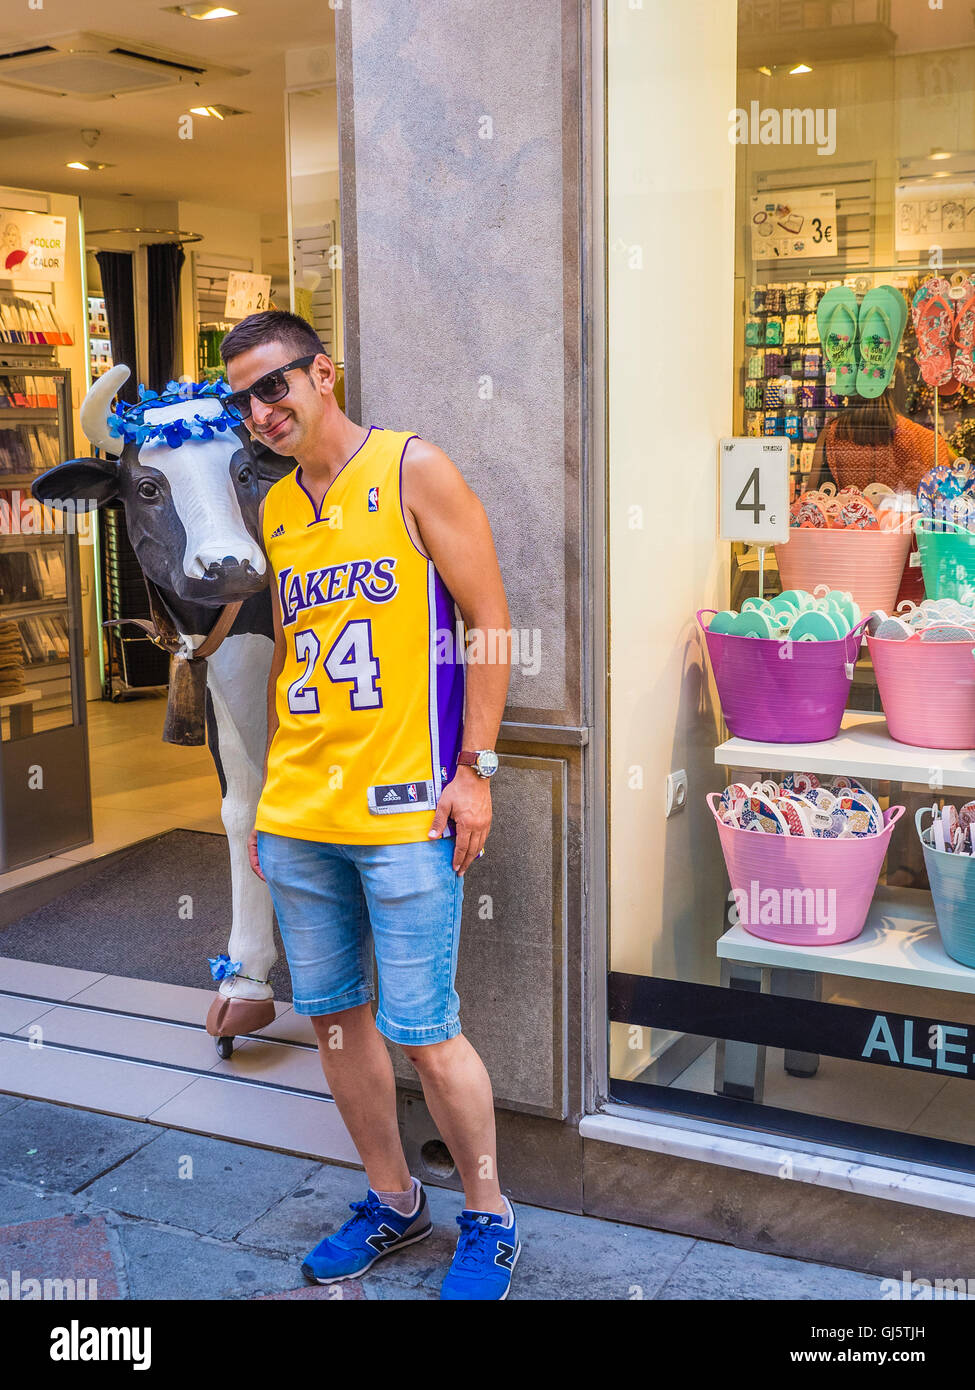 wholesale dealer 0834b 4cacc Lakers Stock Photos & Lakers Stock Images - Alamy